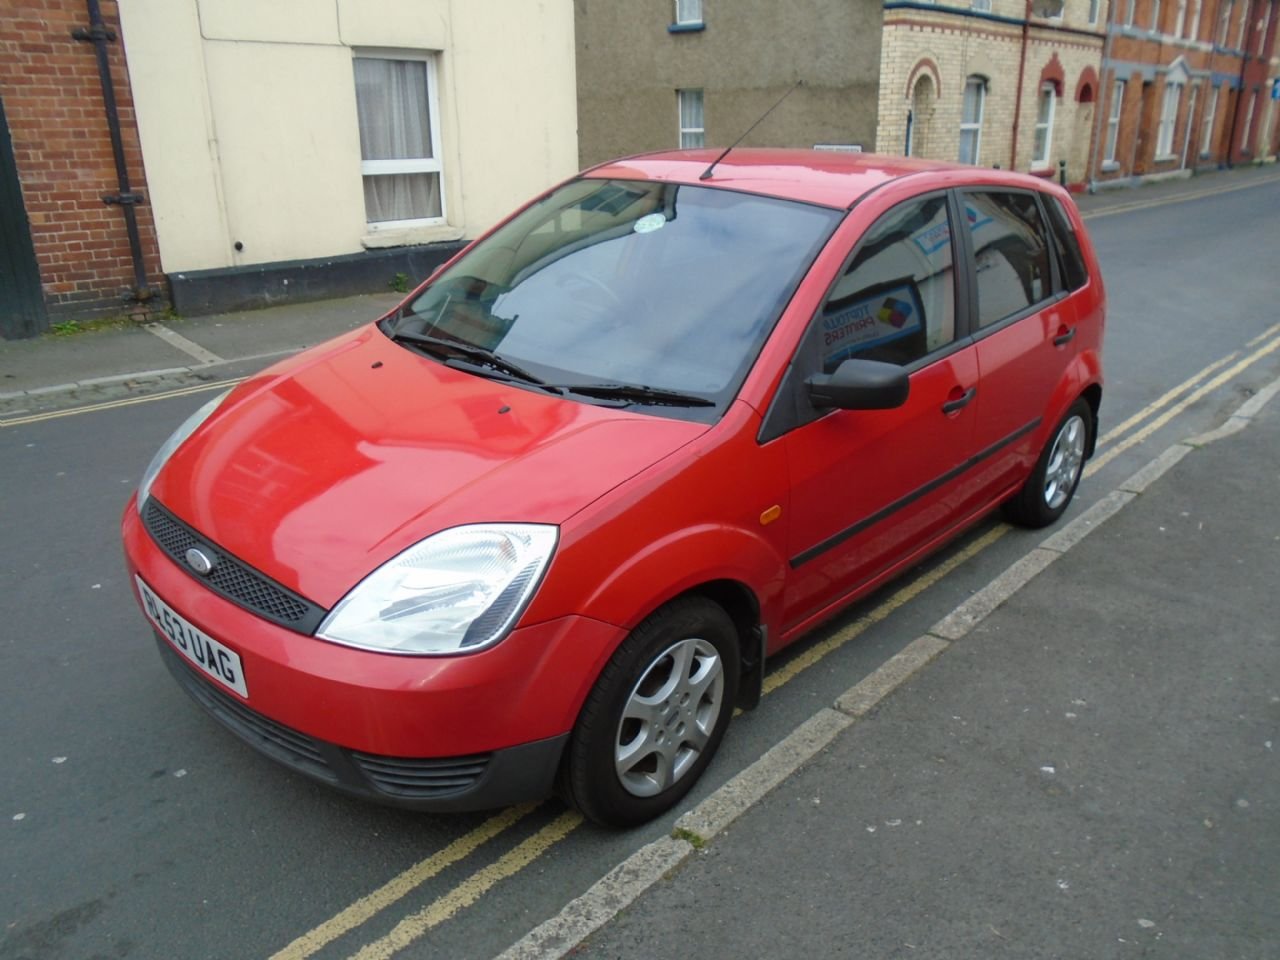 FORD FIESTA 1.4i 16v LX A/C - Picture 3